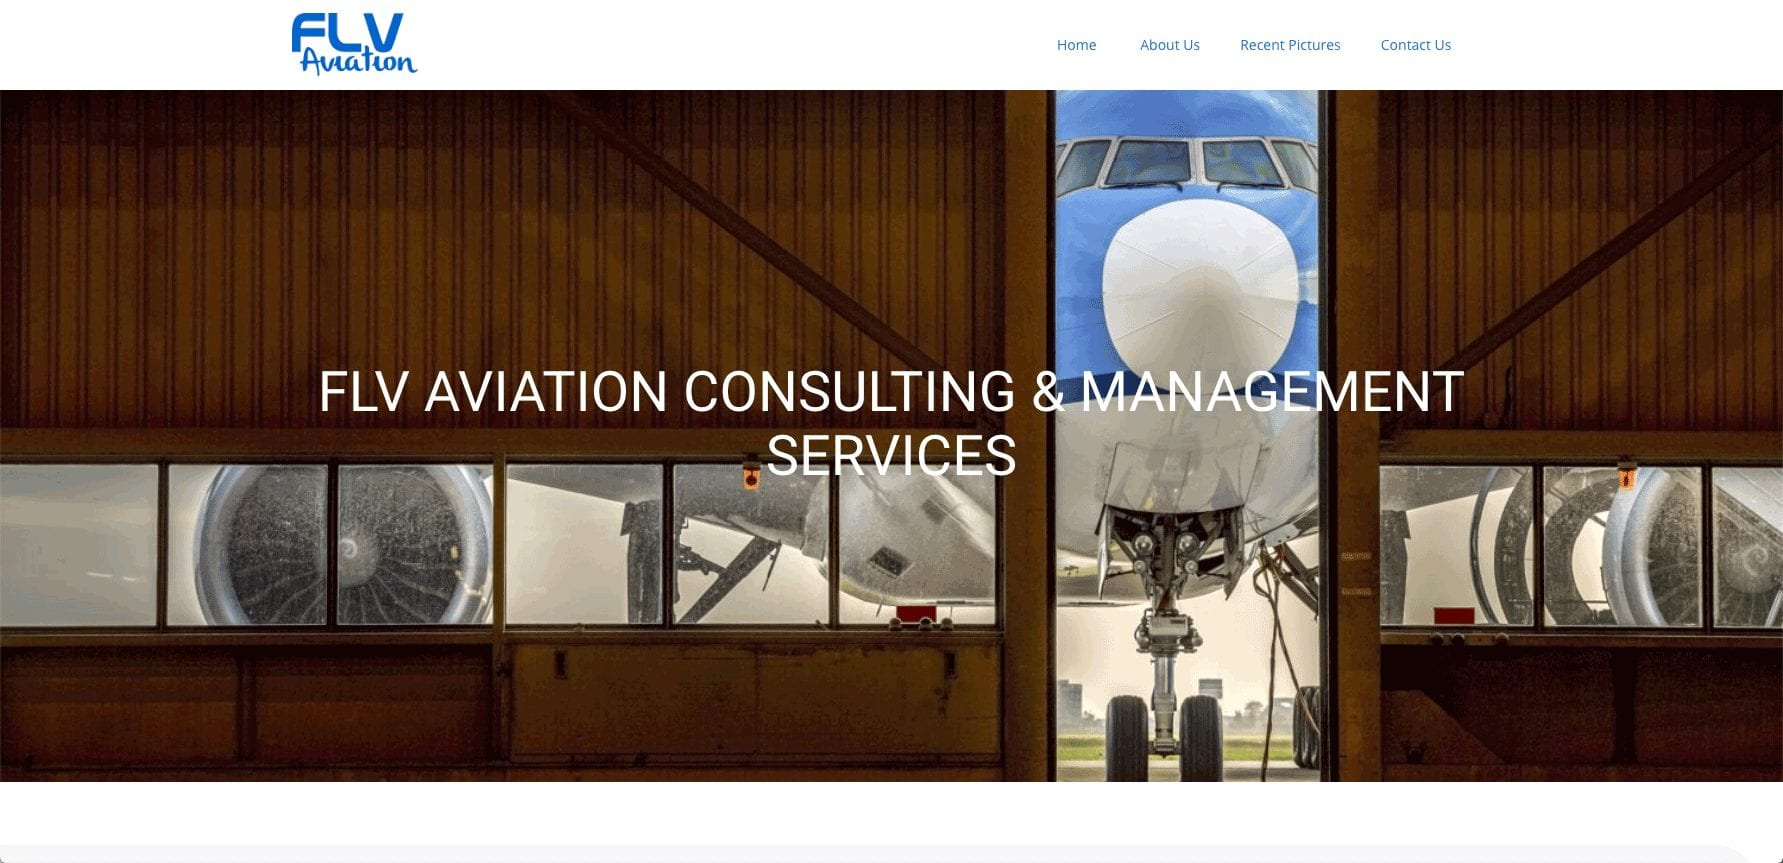 Portfolio-Wordpress-Webdesginer-Jcmwebdesign-FLV-Aviation